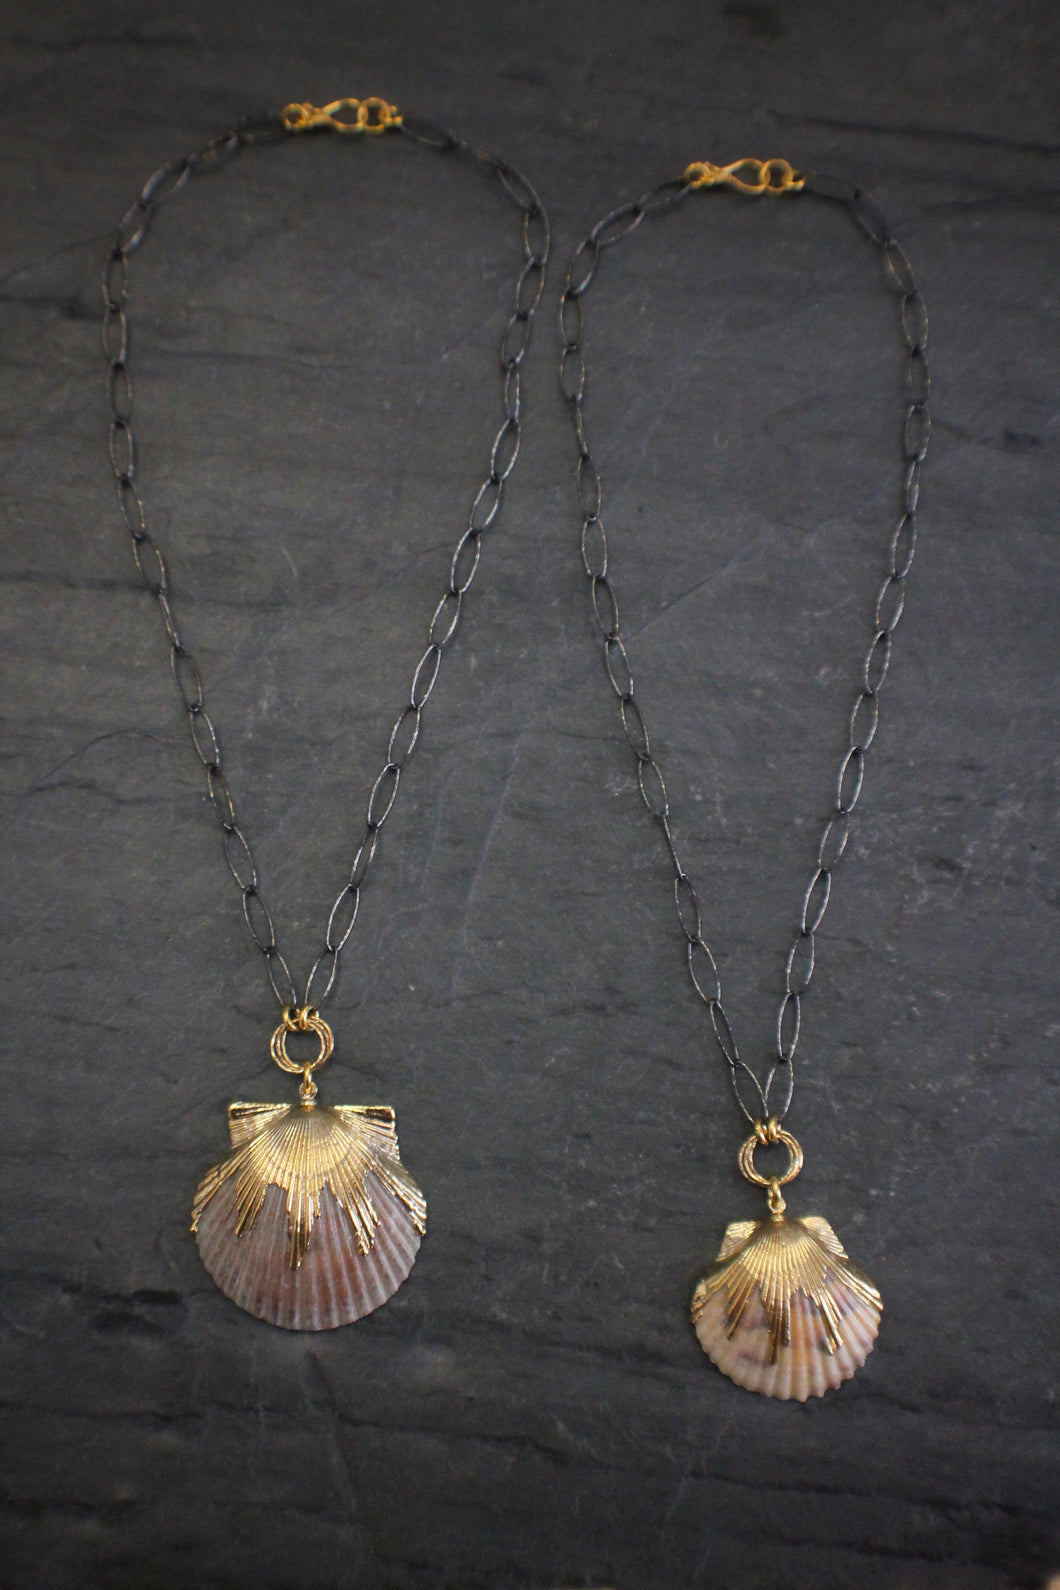 Sea and Stone Jewelry - Two Scallop Shell Necklaces side-by-side. Crafted in sterling silver chain and vermeil.